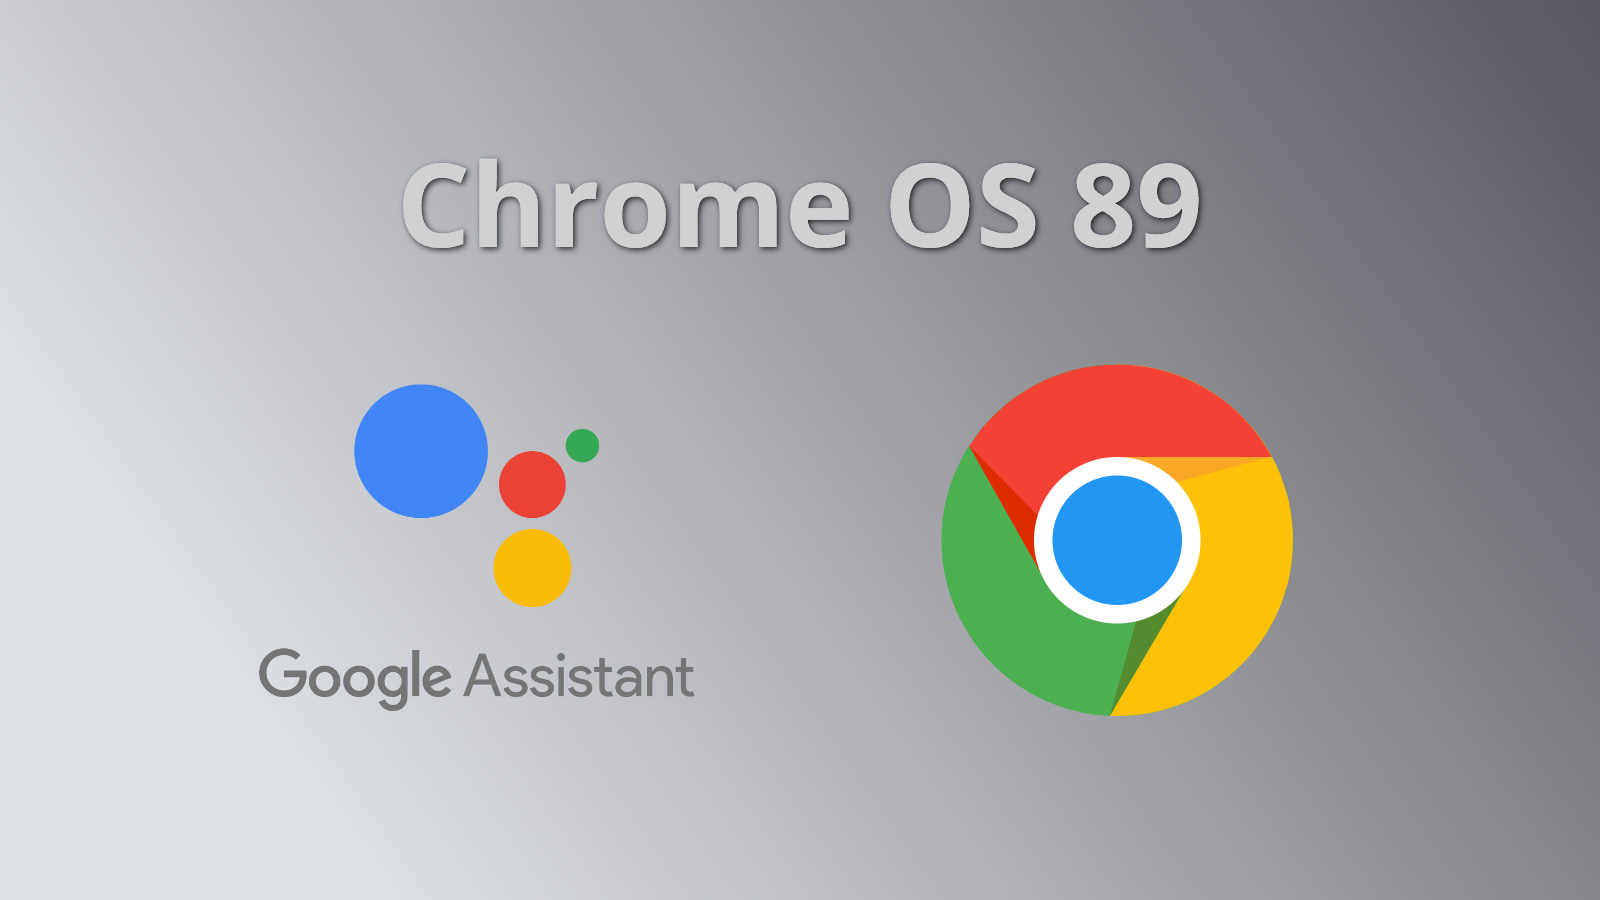 Chrome OS 89 brings deeper Google Assistant integration